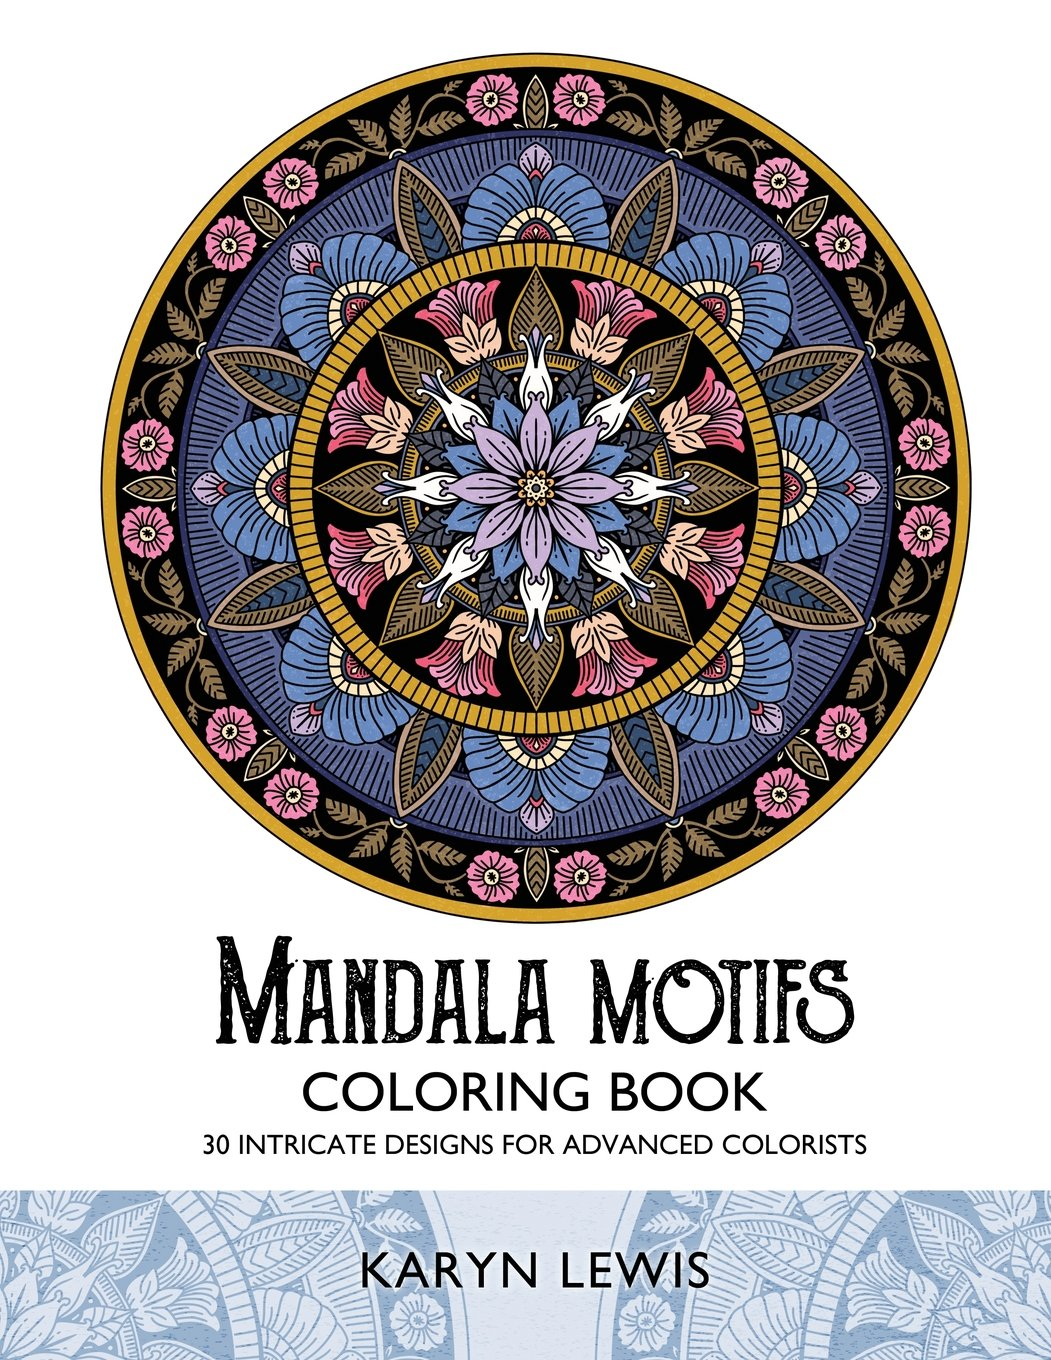 Mandala Motifs Coloring Book: 30 Intricate Designs for Advanced Colorists